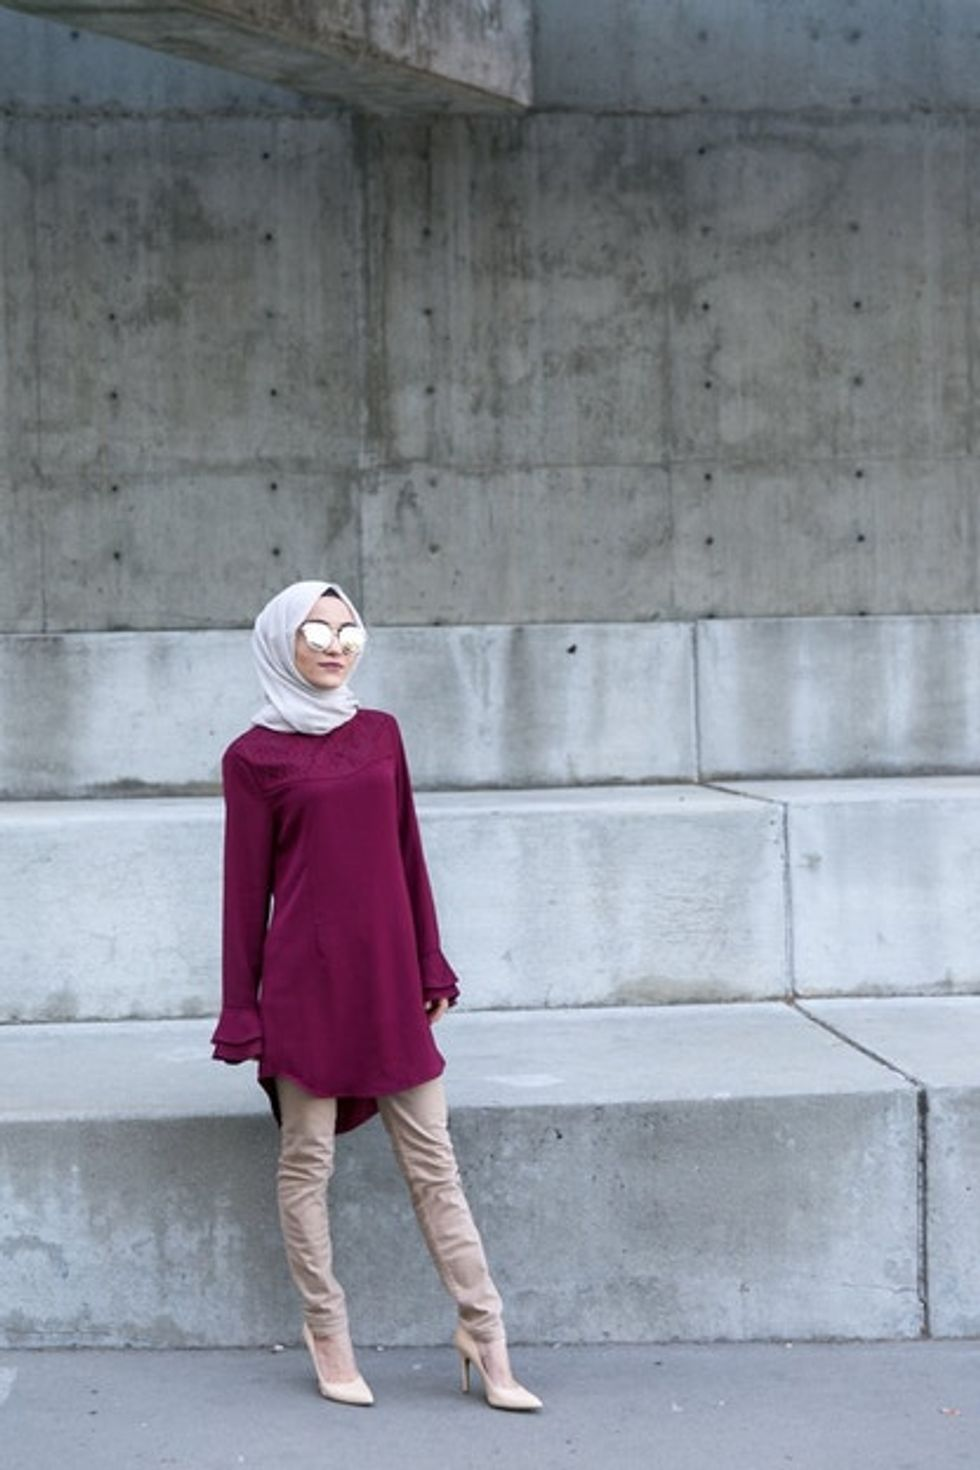 Macy's becomes first major department store in the U.S. to sell hijabs.